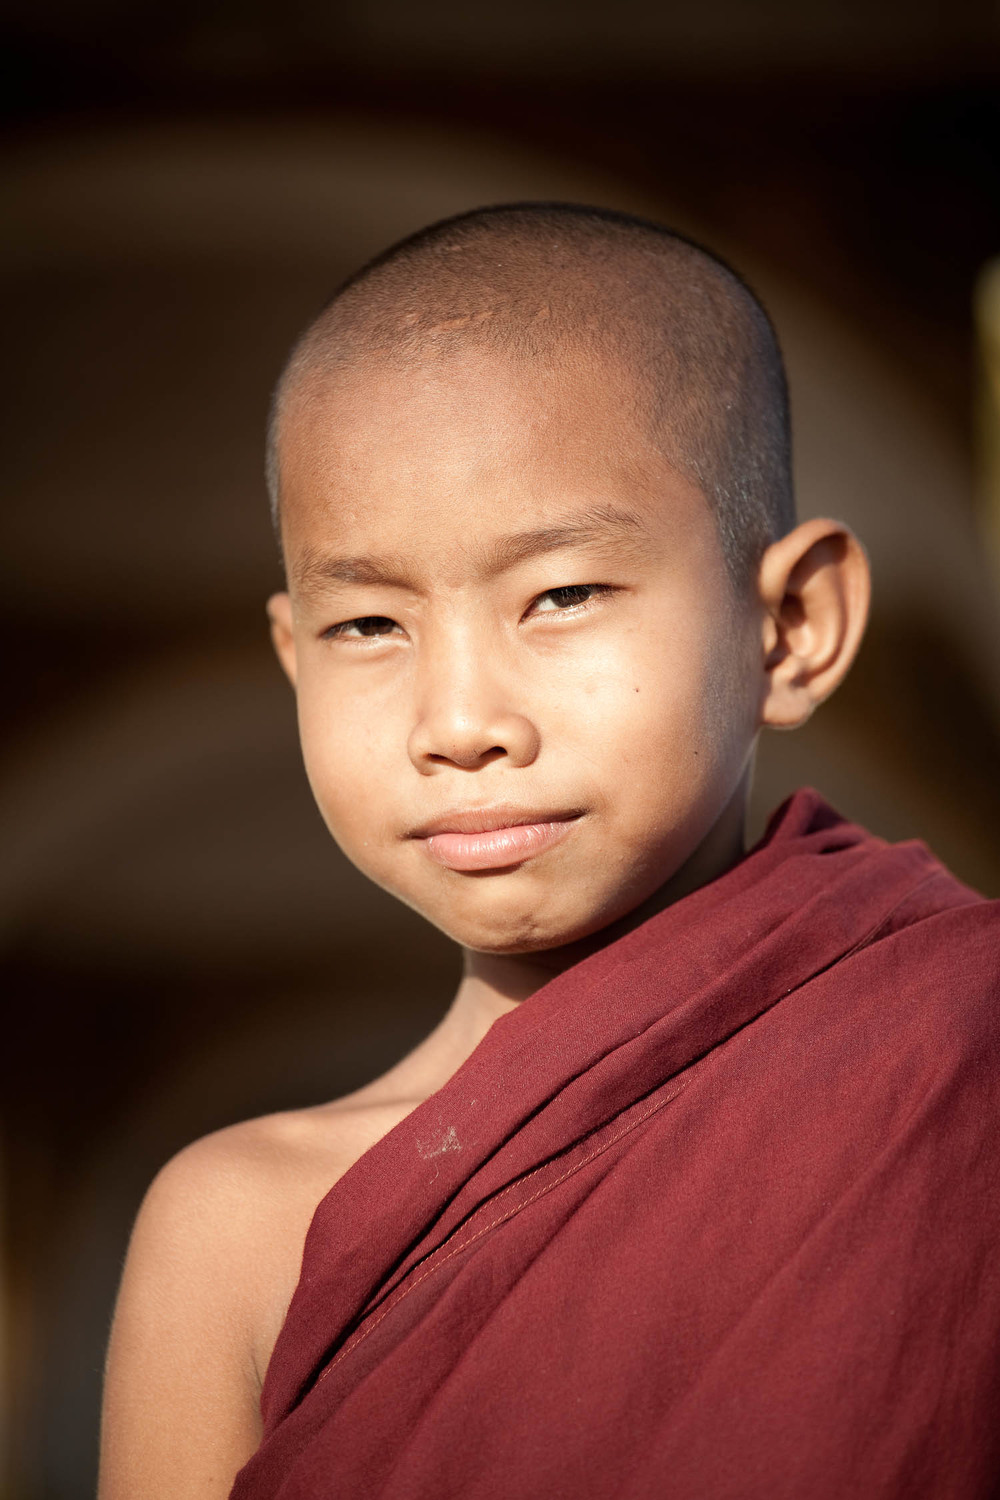 Trainee-monk-portrait-mandalay-hill-pagoda-myanmar-burma-asia-travel